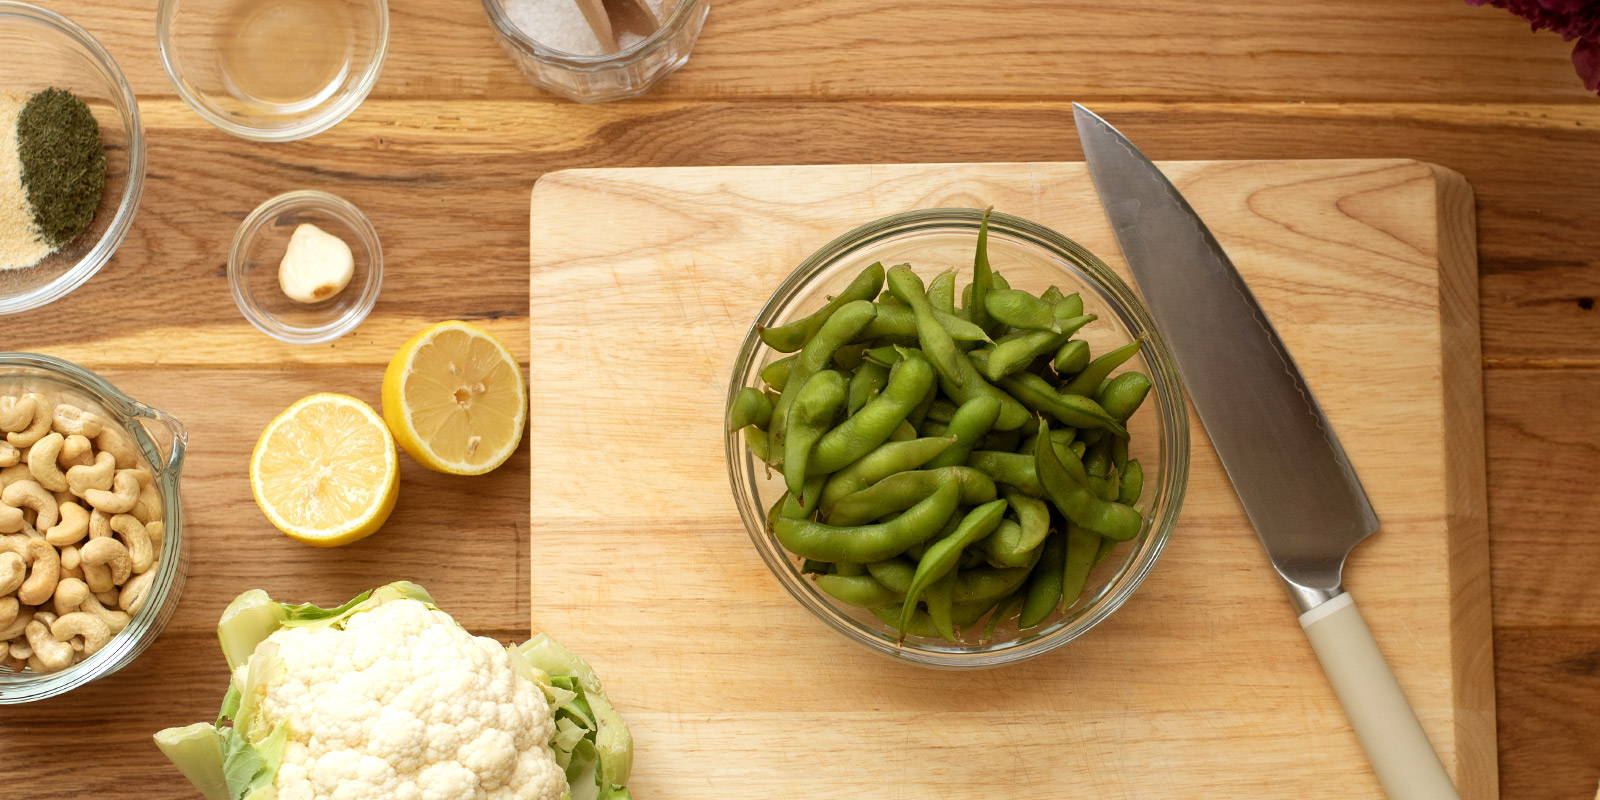 Bowl of edamame on cutting board surrounded by ingredients and a cutting knife.